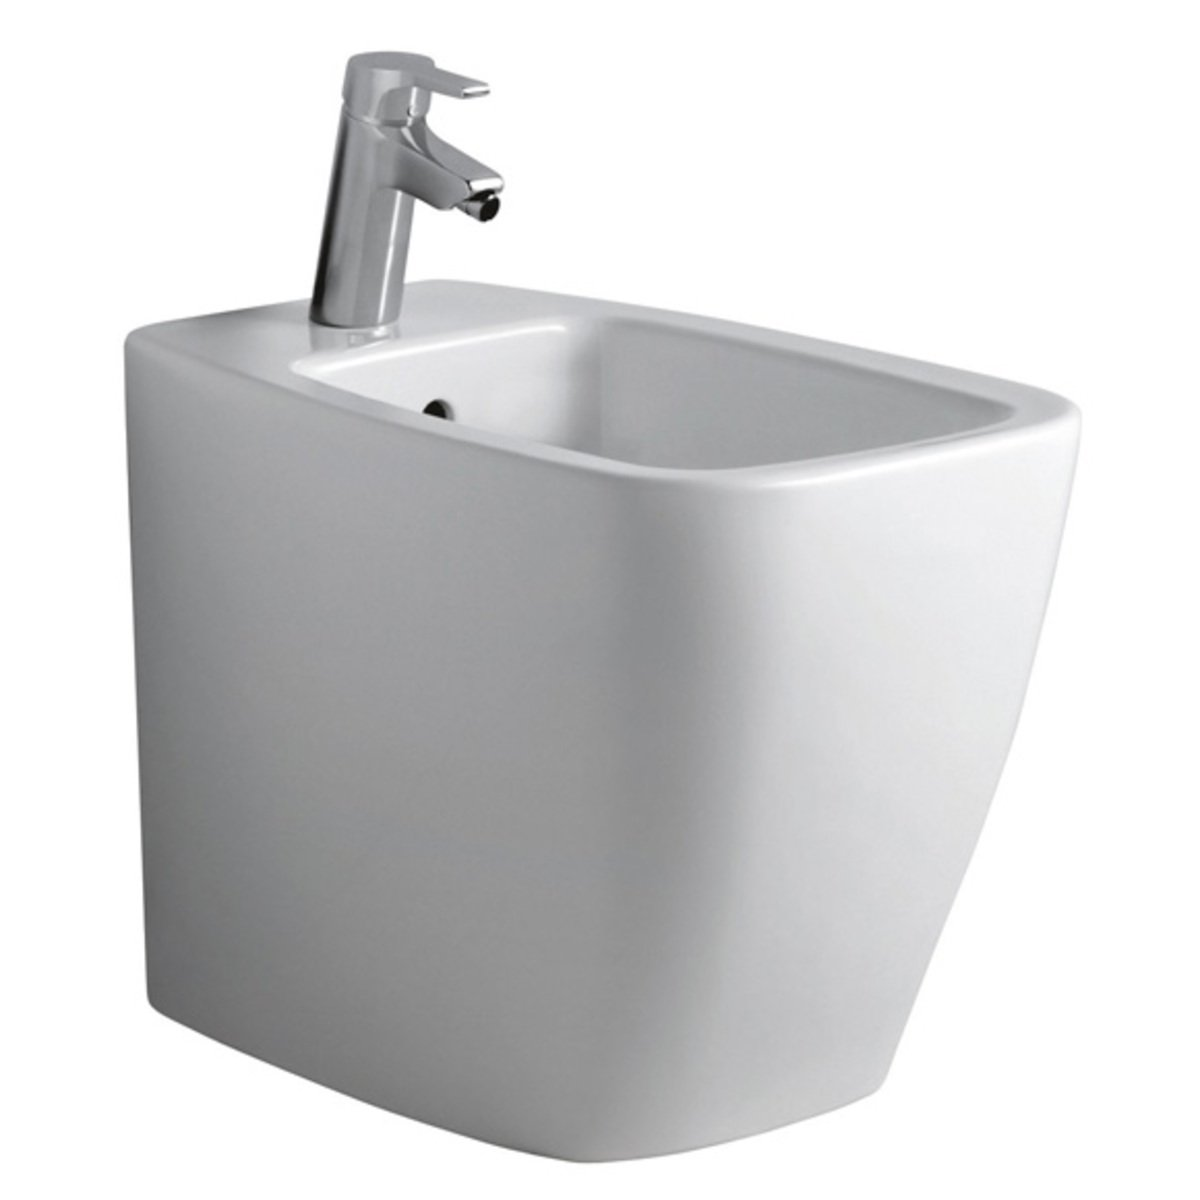 Ideal standard ventuno staand bidet wit t515001 for Ideal standard liuto bidet